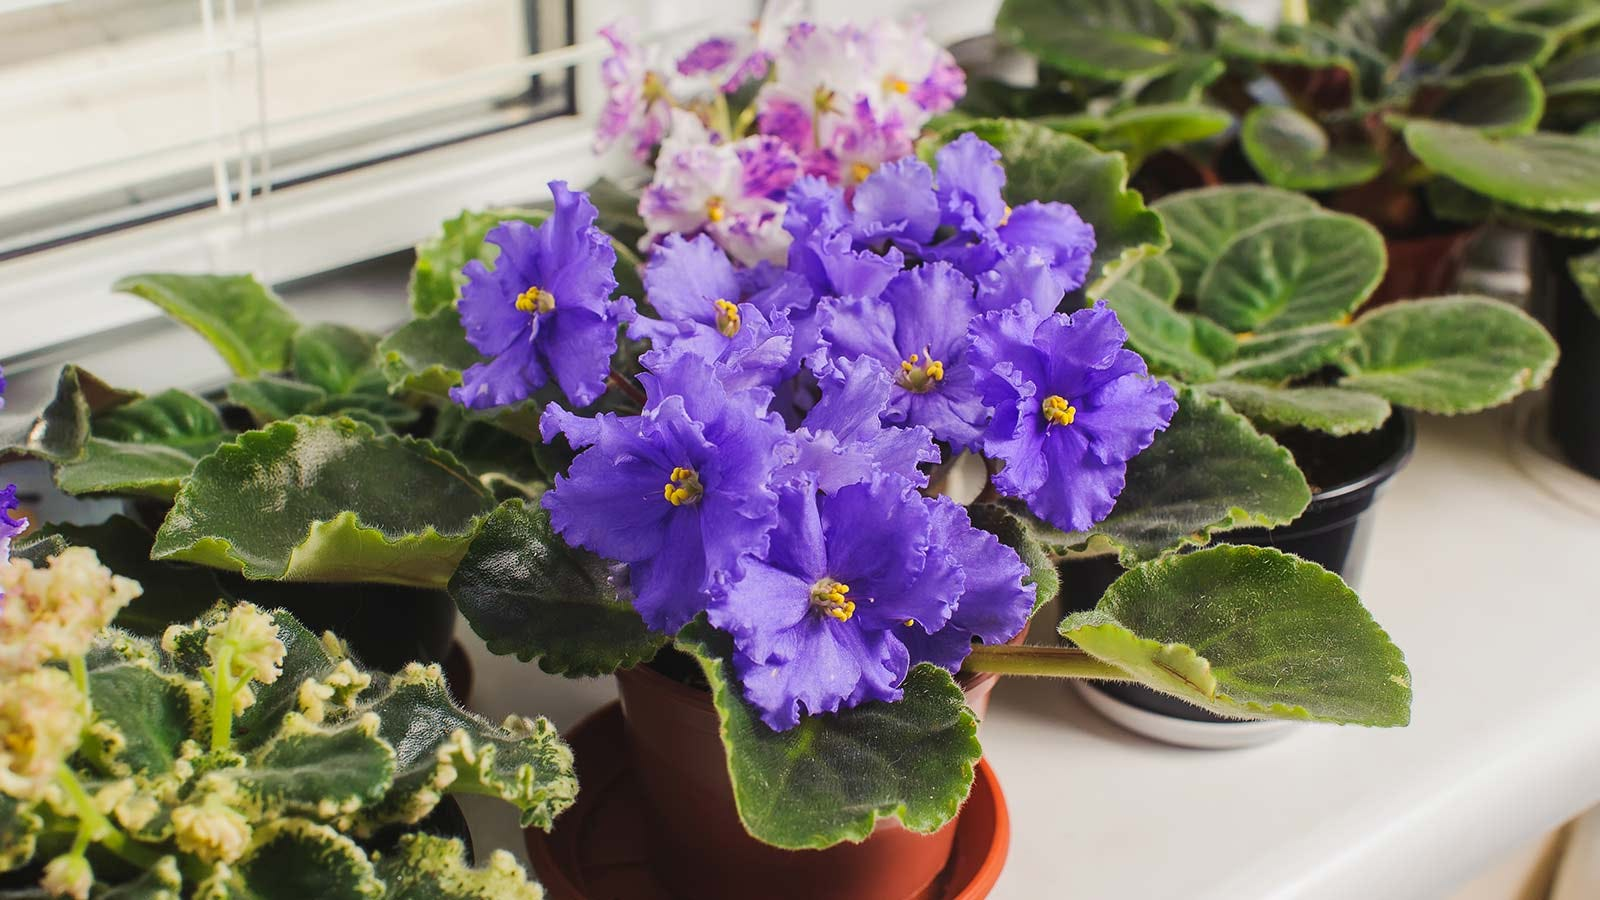 An African violet in bloom, sitting beside other houseplants.